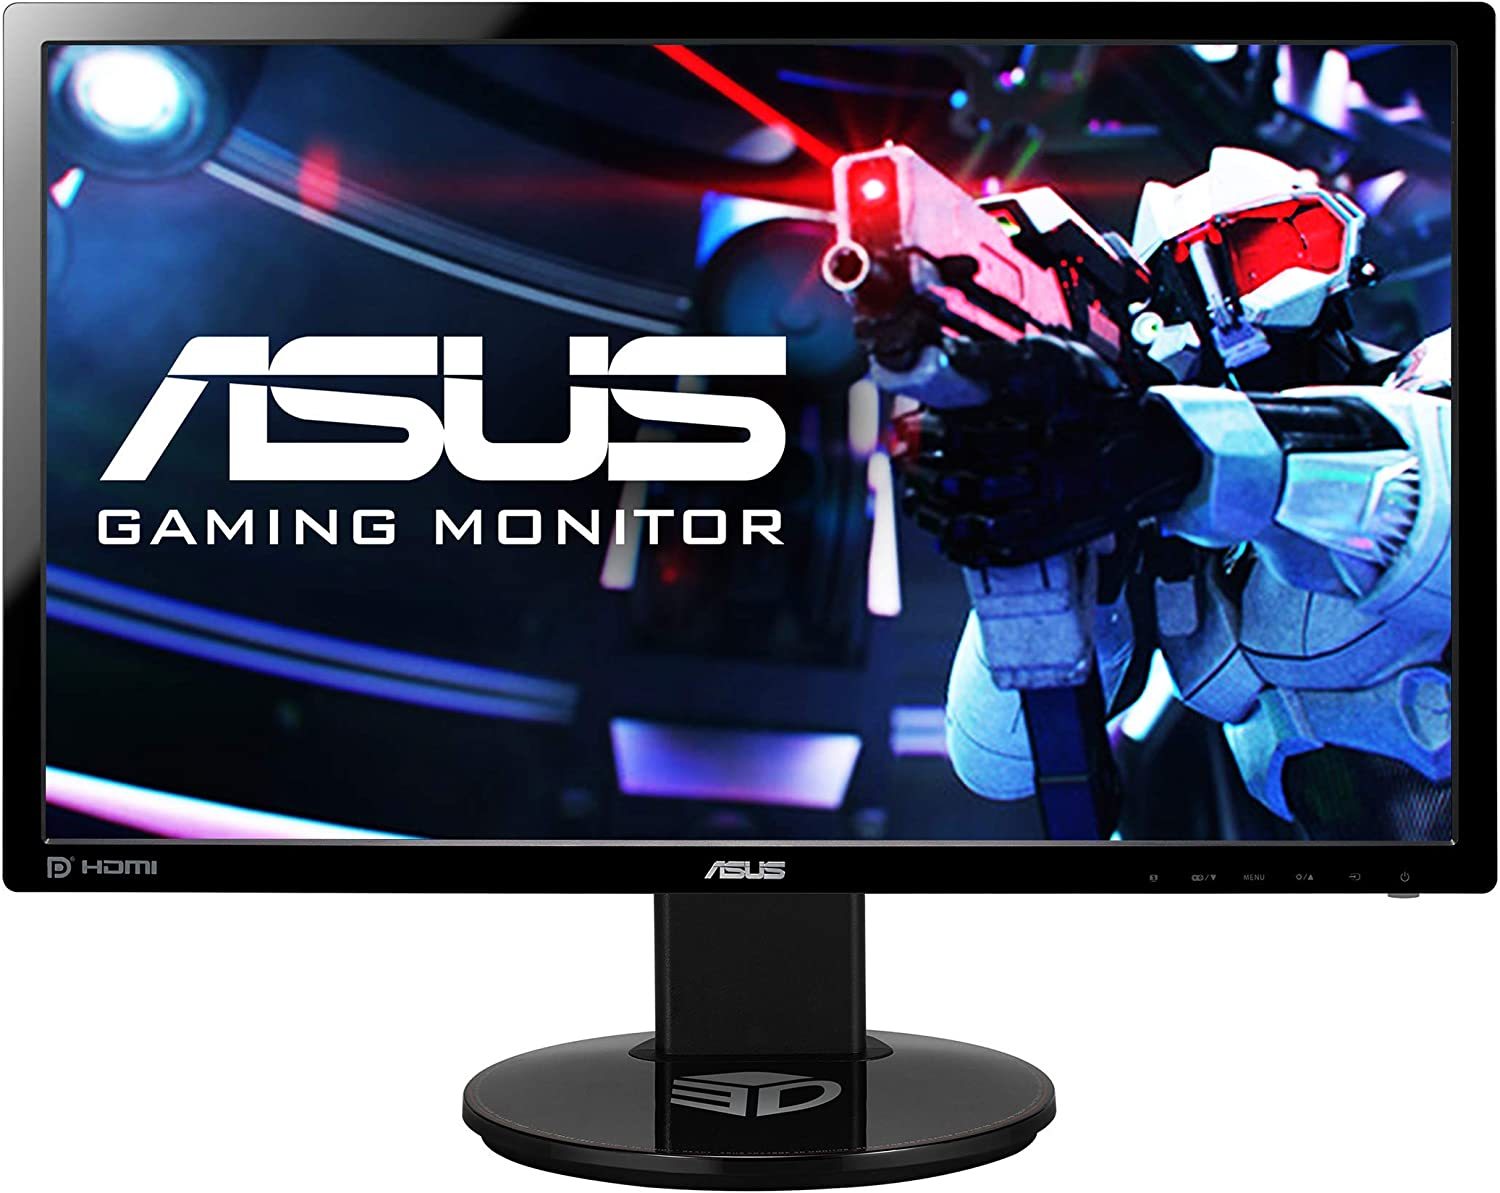 Asus ROG Strix VG248QE Gaming Monitor